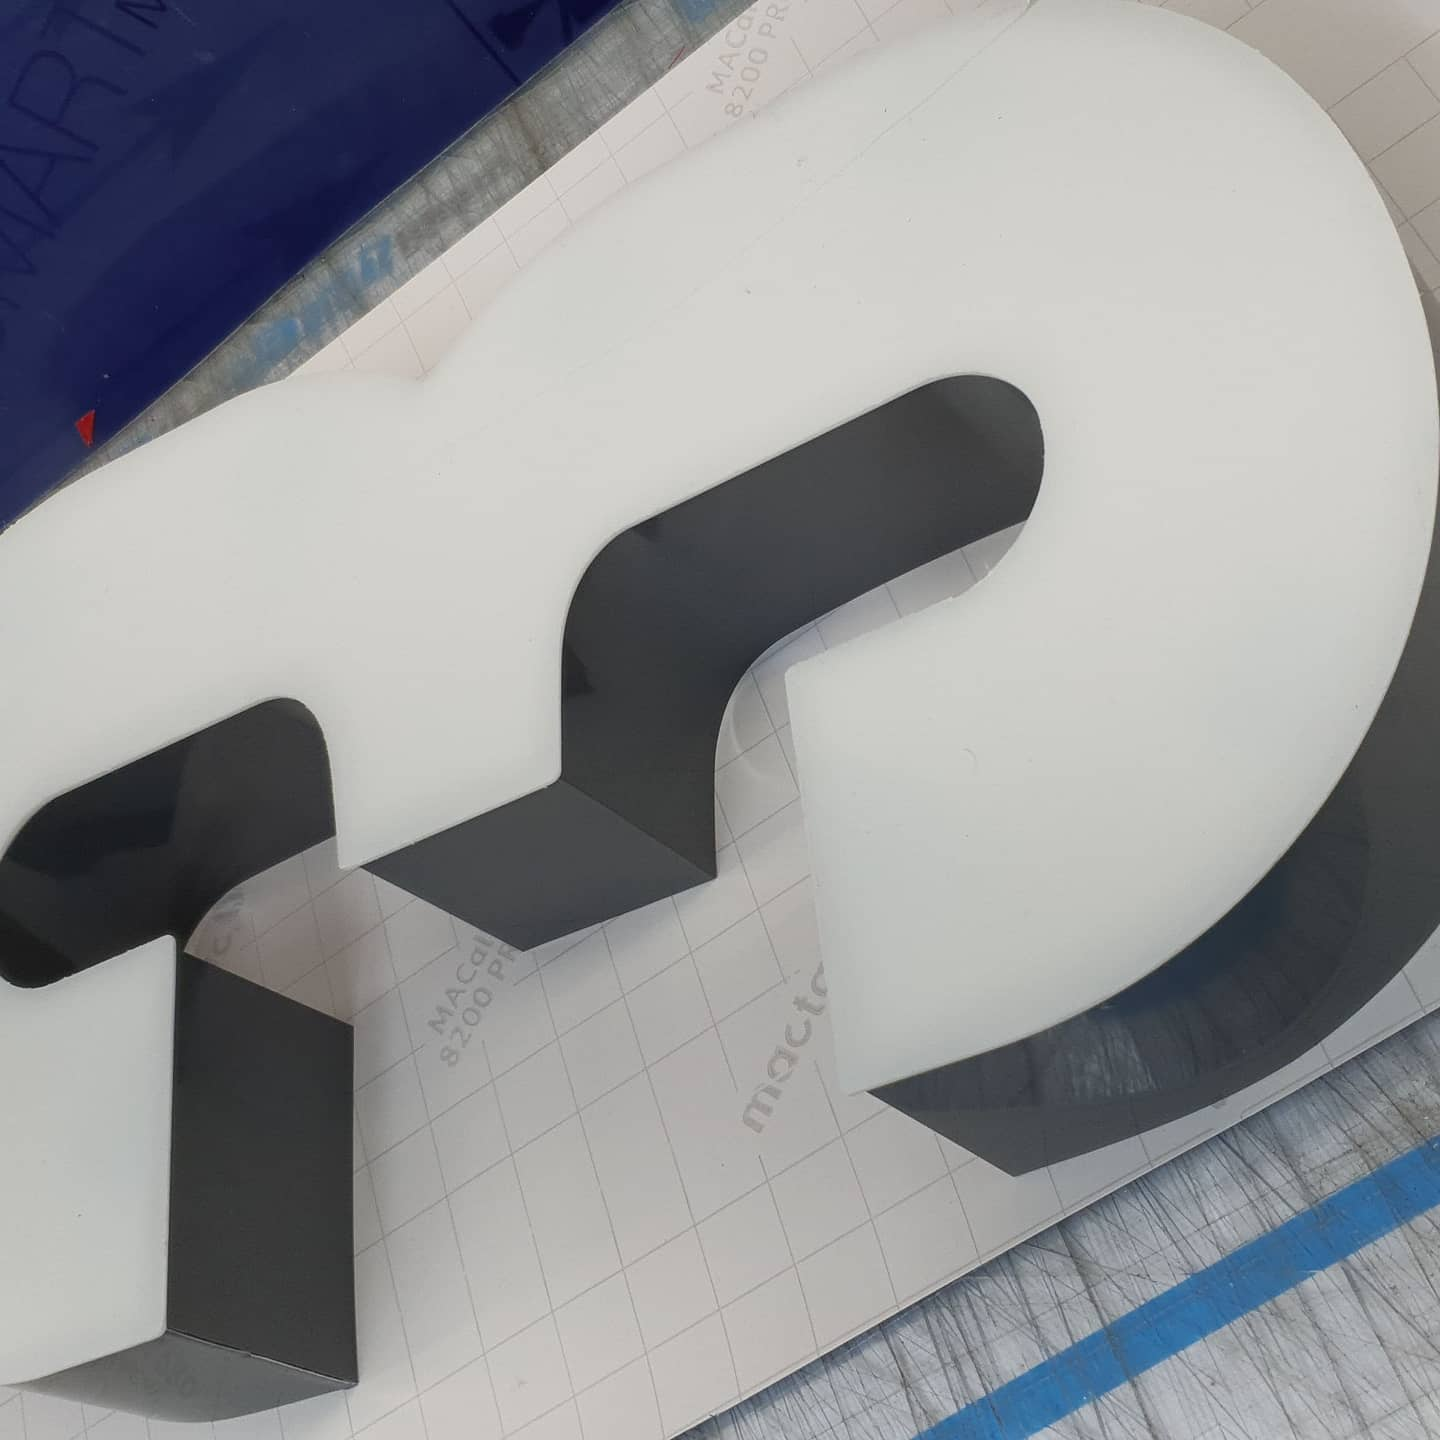 3D Letter fabrication. To place an order for 3D letters, If at all possible PLEASE whatsapp me on 07702153393